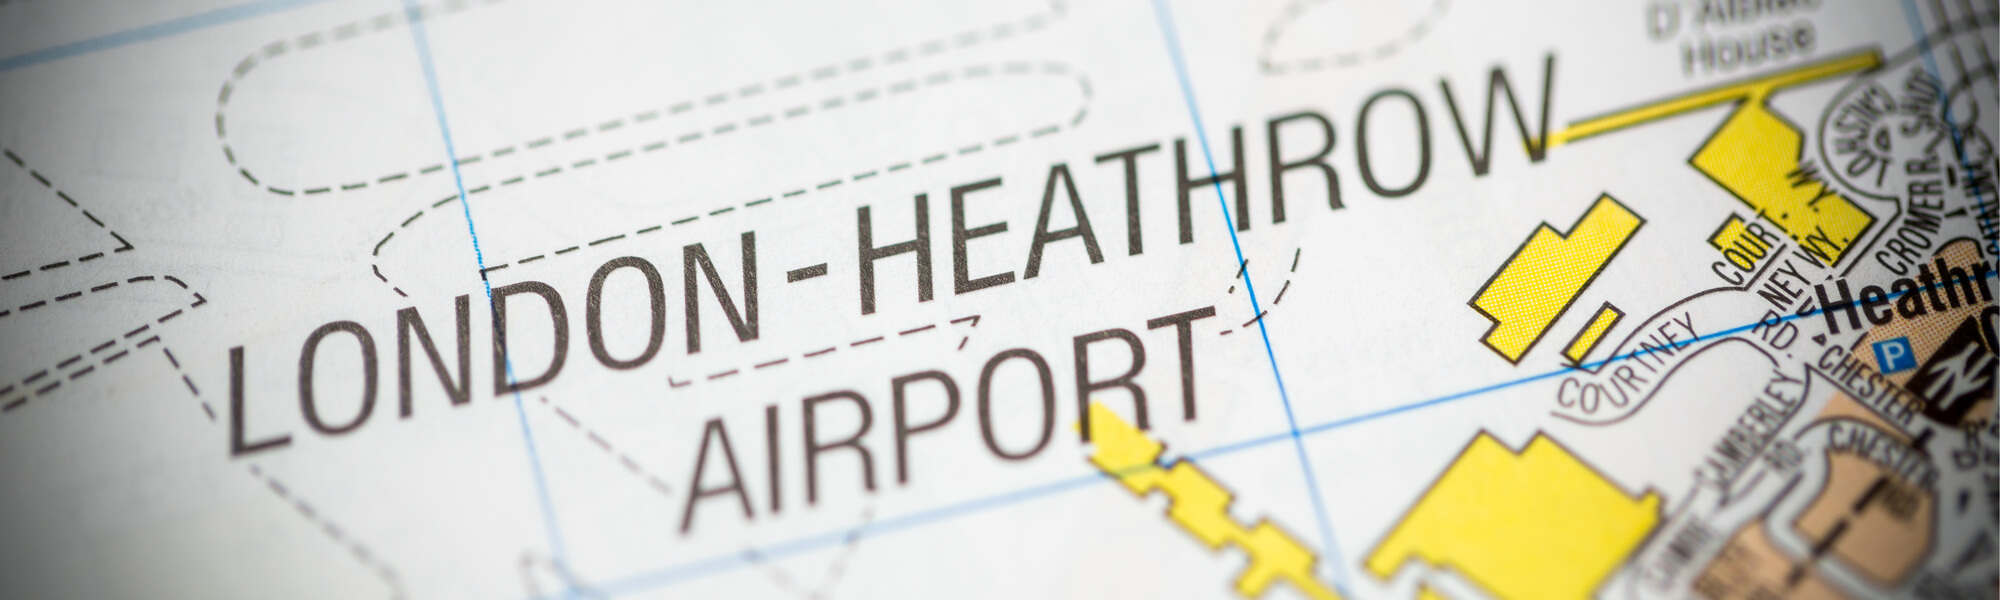 London Heathrow case study